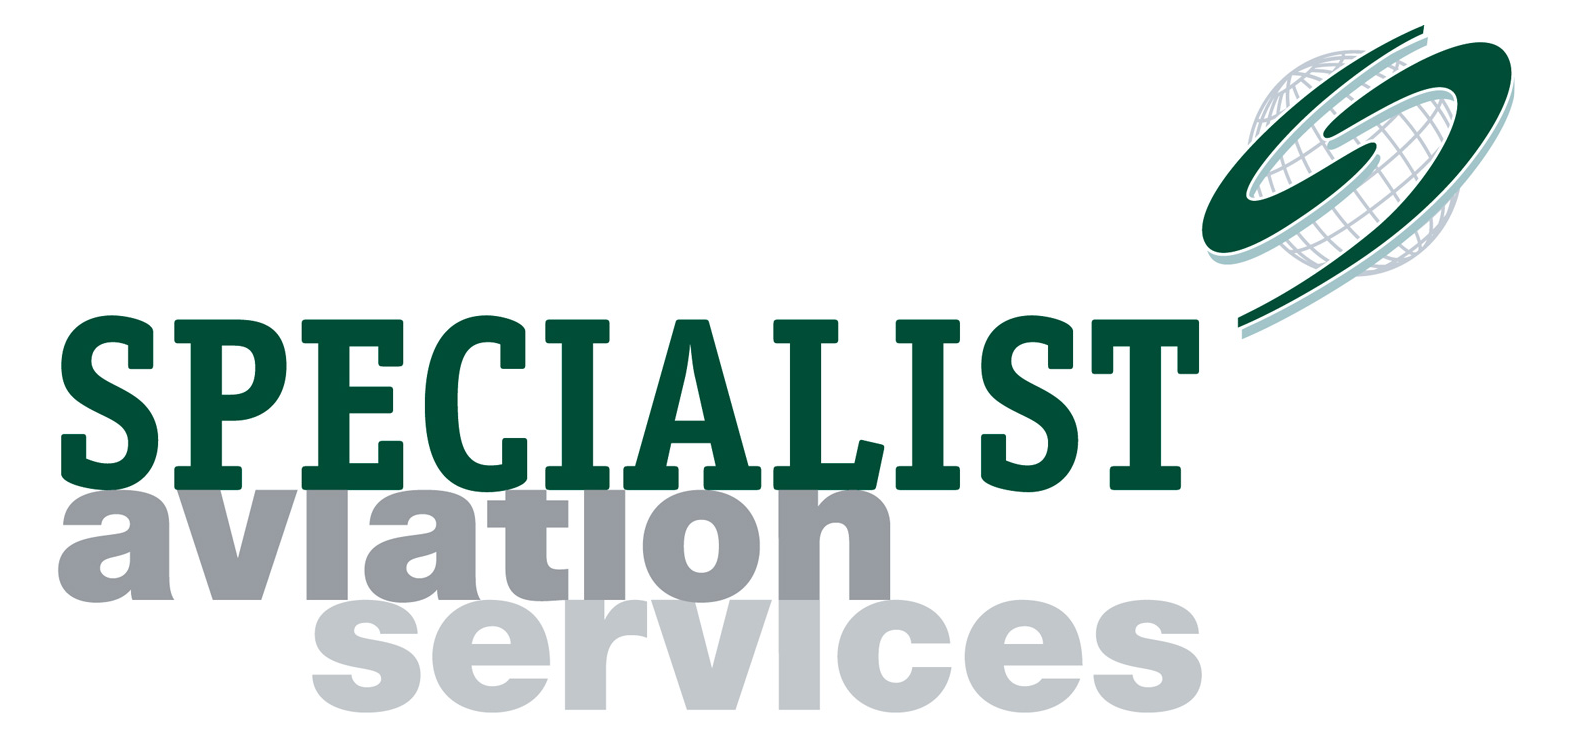 Specialist Aviation Services Ltd formed and all previous company names withdrawn from use.